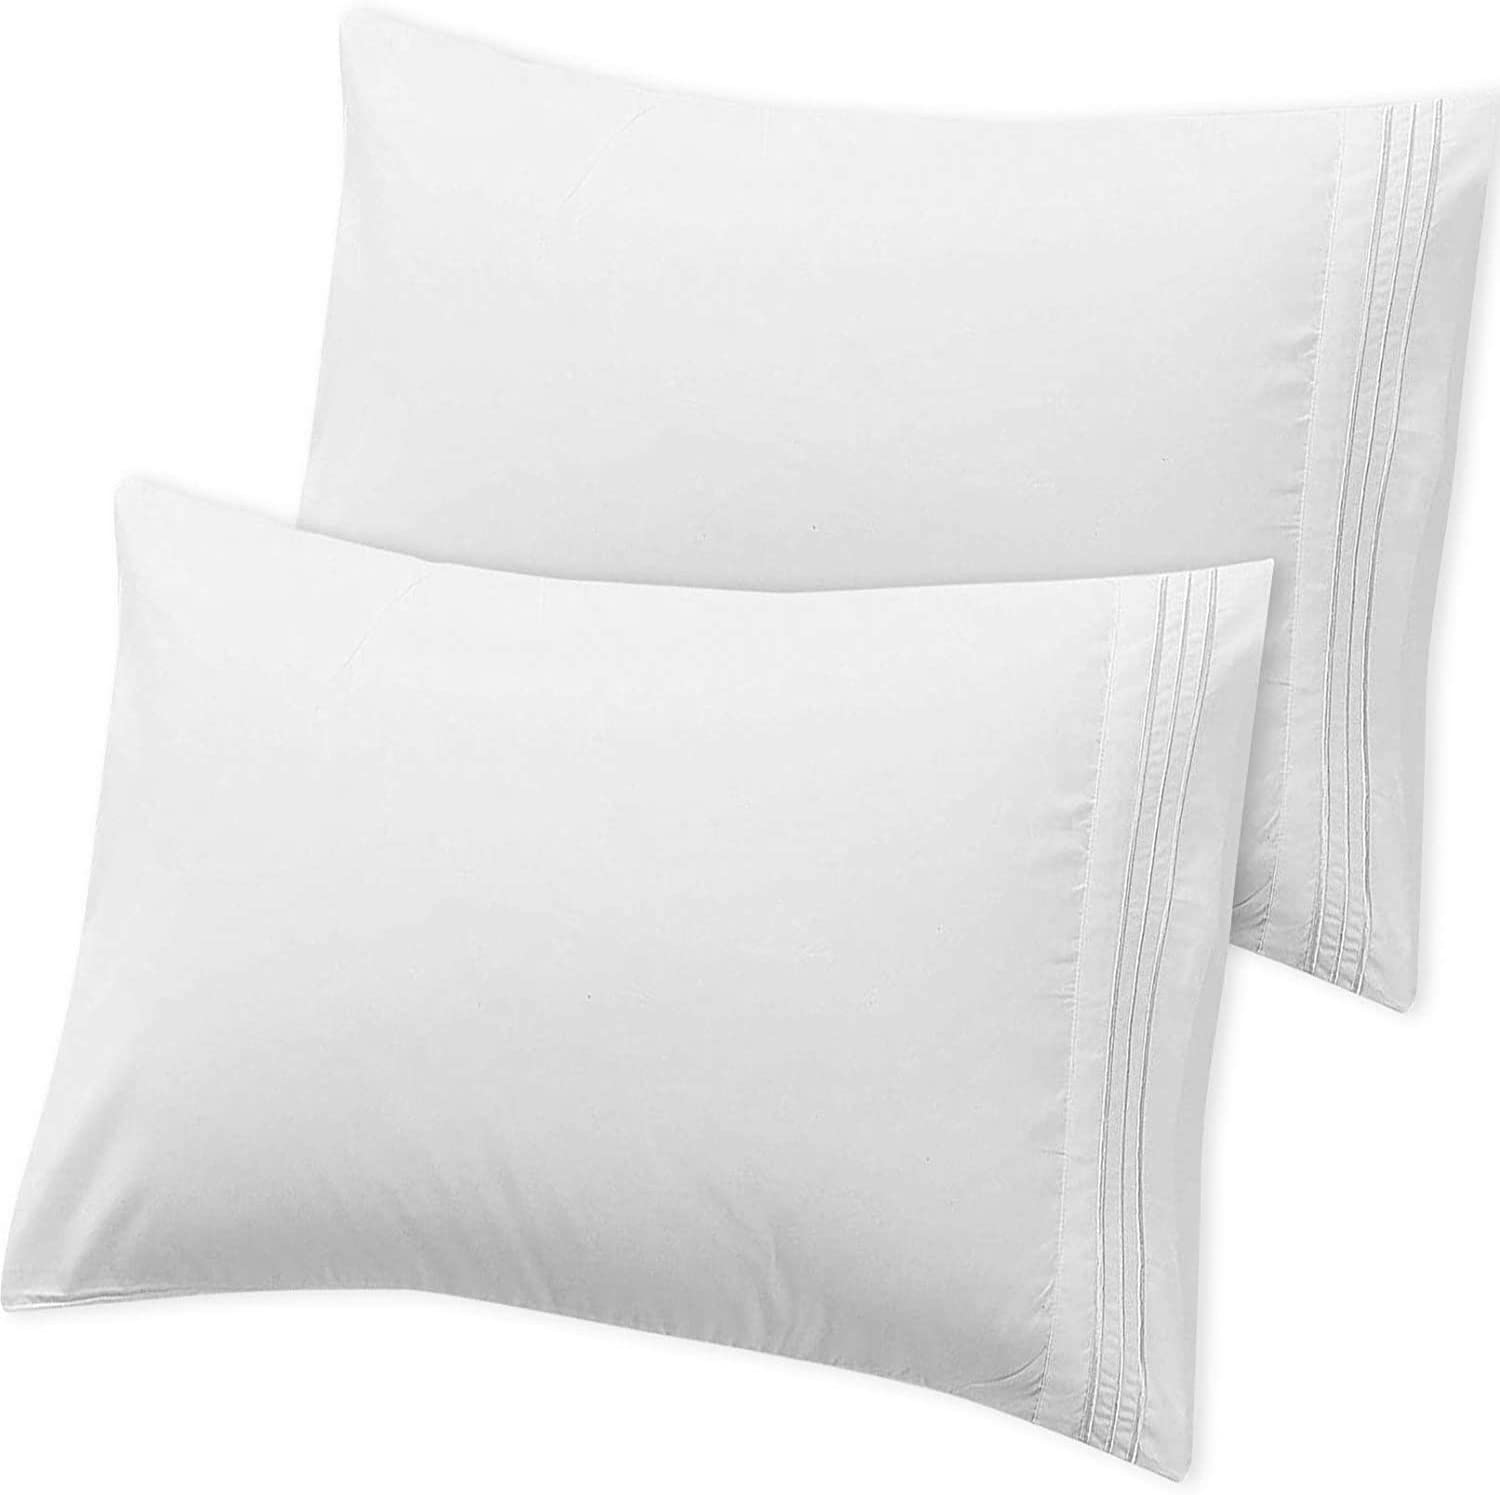 Hannah Linen White Pillowcases Set of 2 - Brushed Microfiber 1800 Thread Count Pillow Cases - Wrinkle, Shrinkage, Fade Resistant & Hypoallergenic Envelop Closure Pillow Covers (White, Queen)